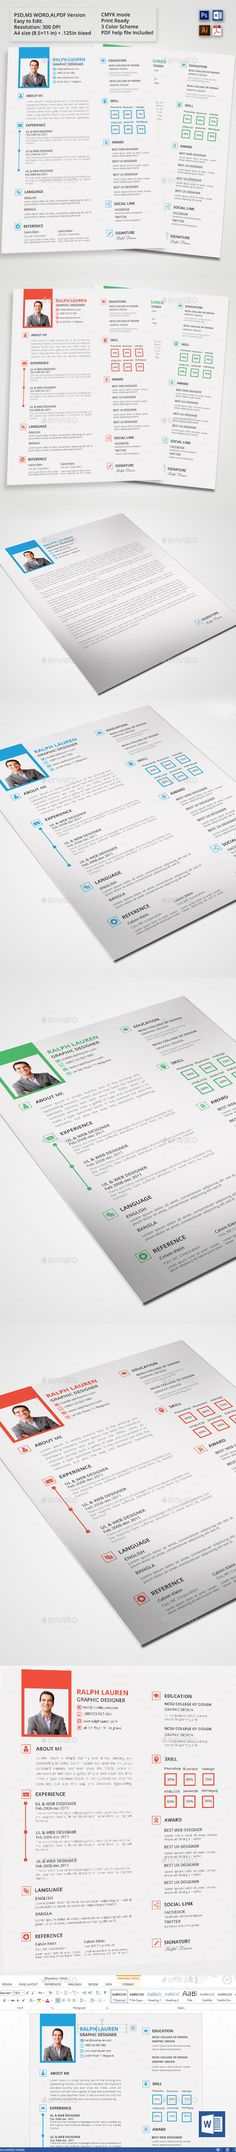 Simple Clean Resume Graphic designers, Find fonts and Resume cv - simple resumes templates